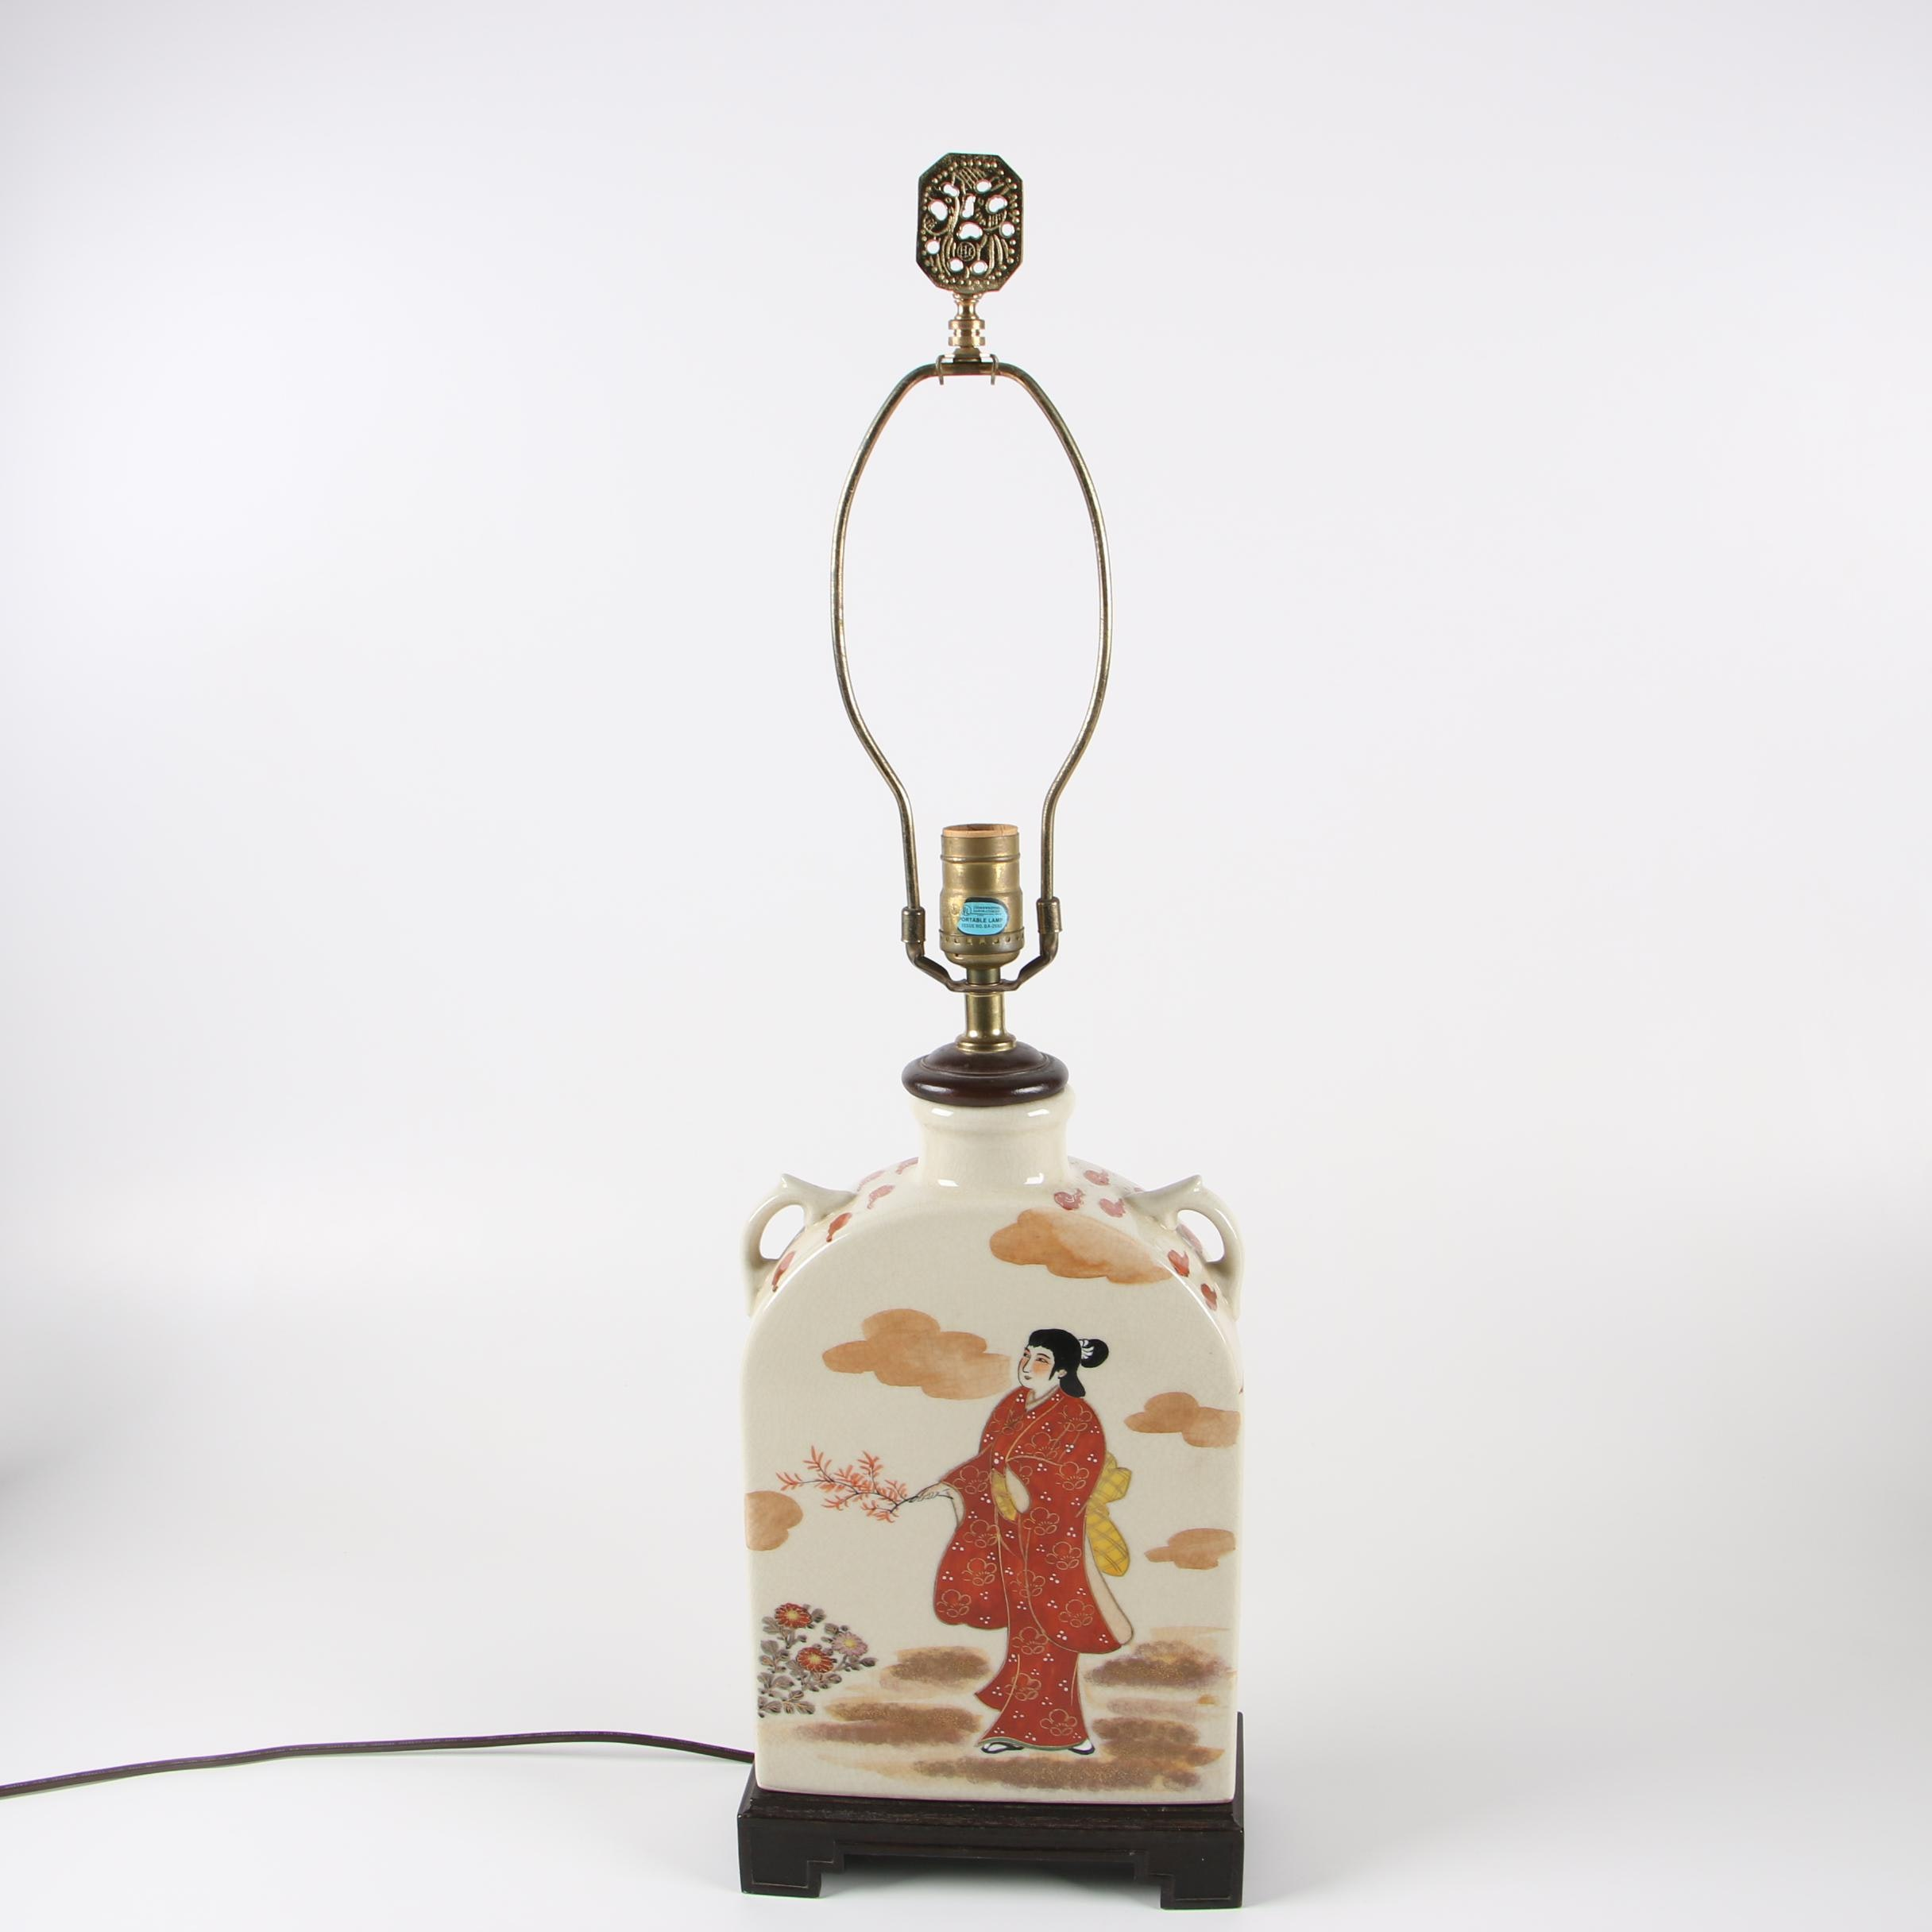 Chinese Ceramic Flat Vase Form Table Lamp, Late 20th Century